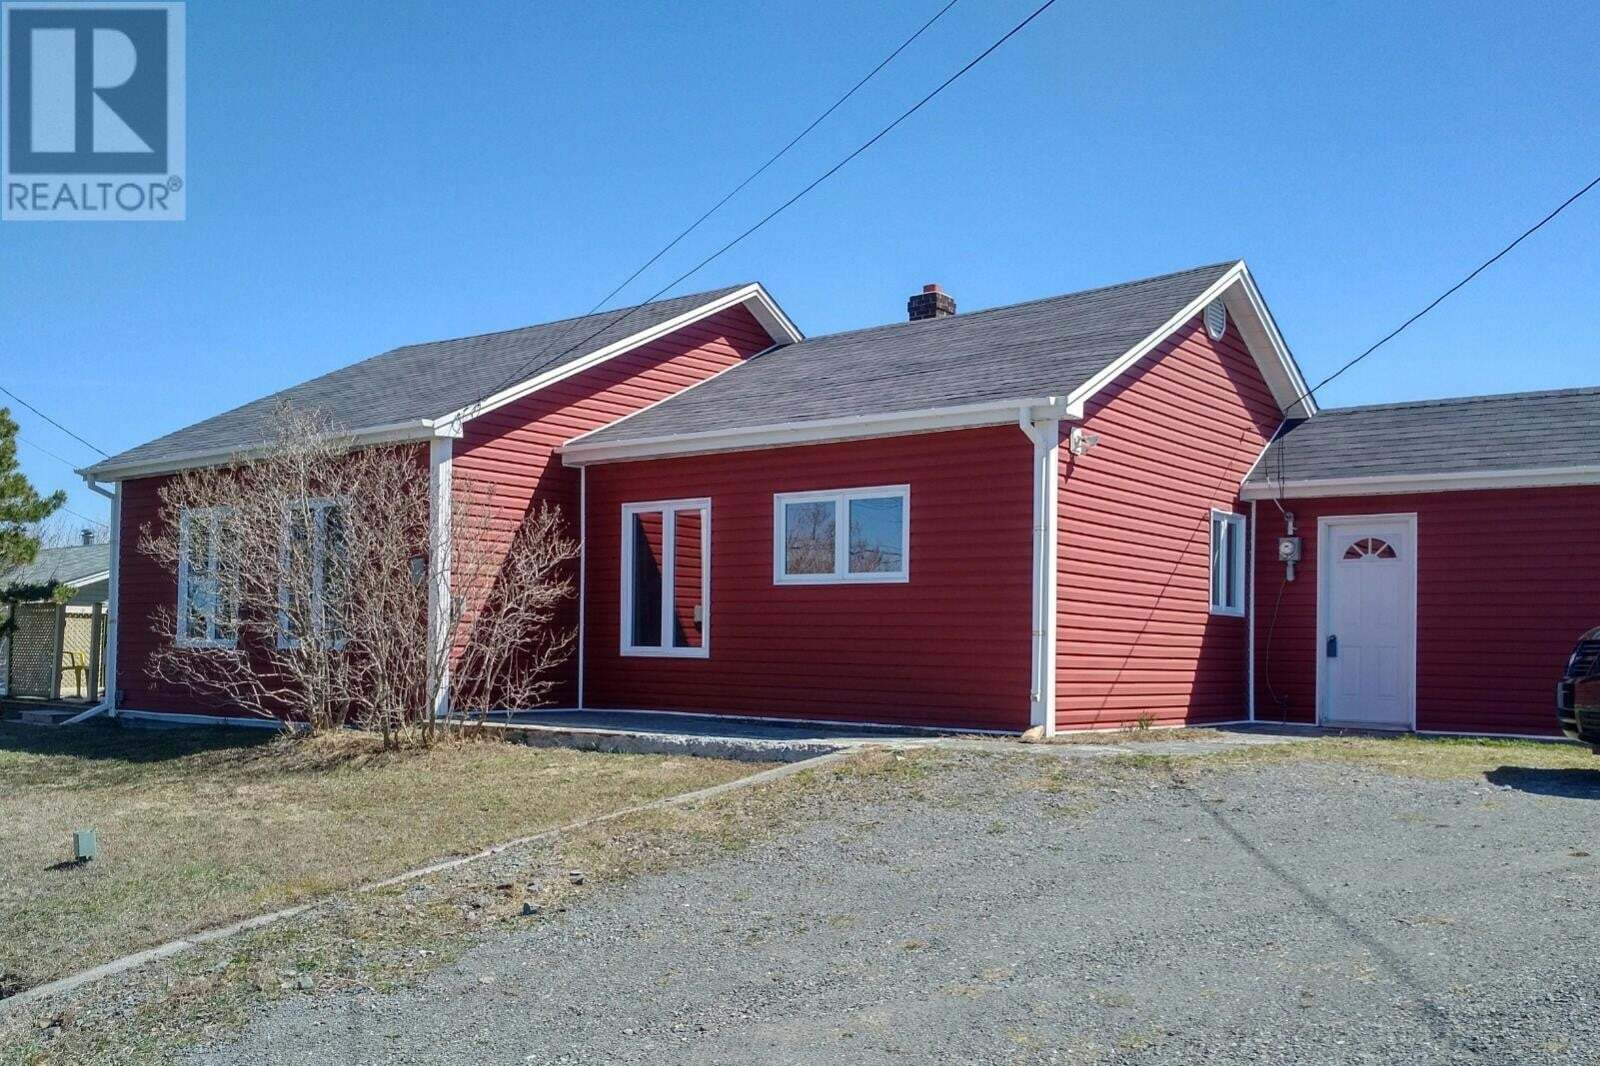 House for sale at 12 Main Rd Blaketown Newfoundland - MLS: 1216984